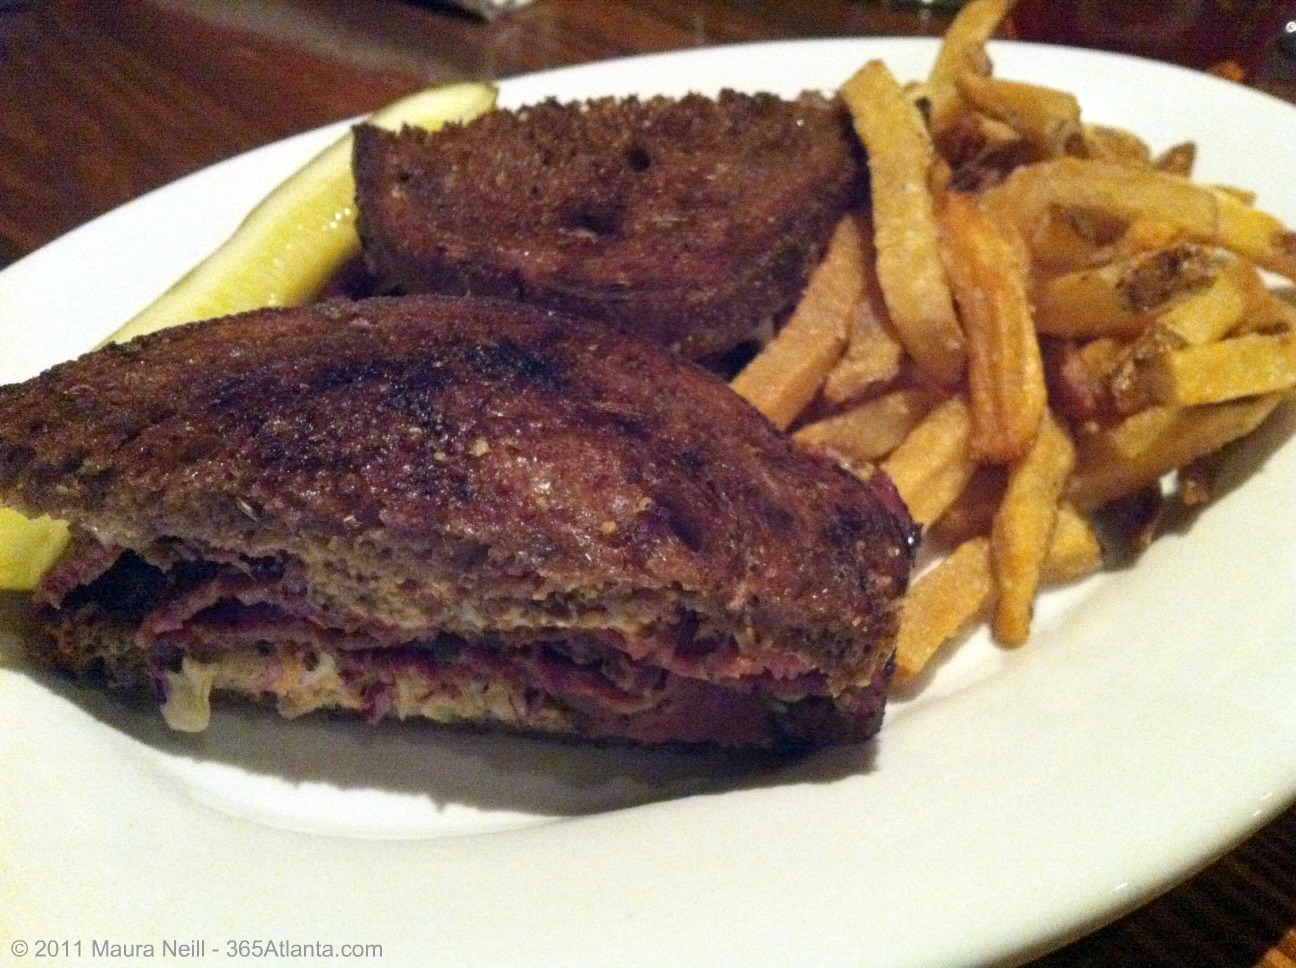 ... Muenster cheese on grilled pumpernickel, served with French fries ($8